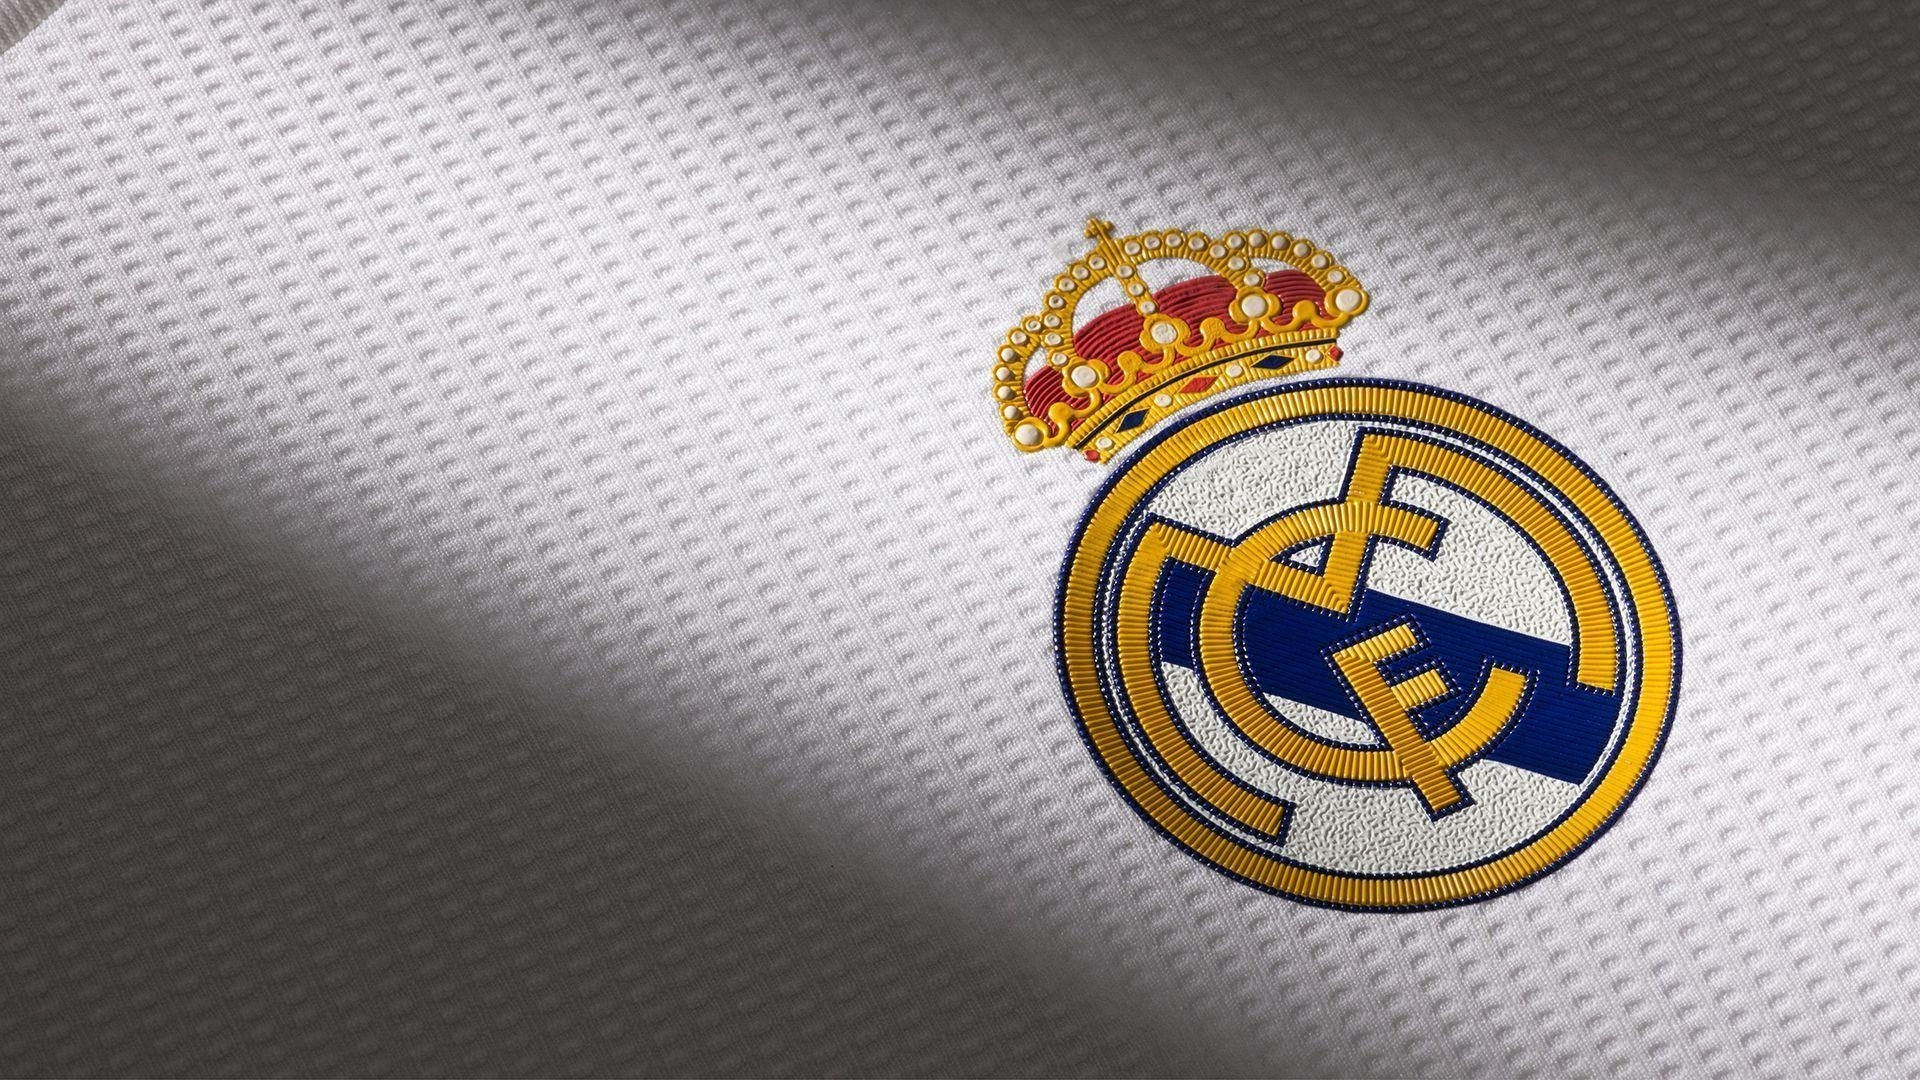 Title : real madrid wallpapers – wallpaper cave. Dimension : 1920 x 1080. File Type : JPG/JPEG